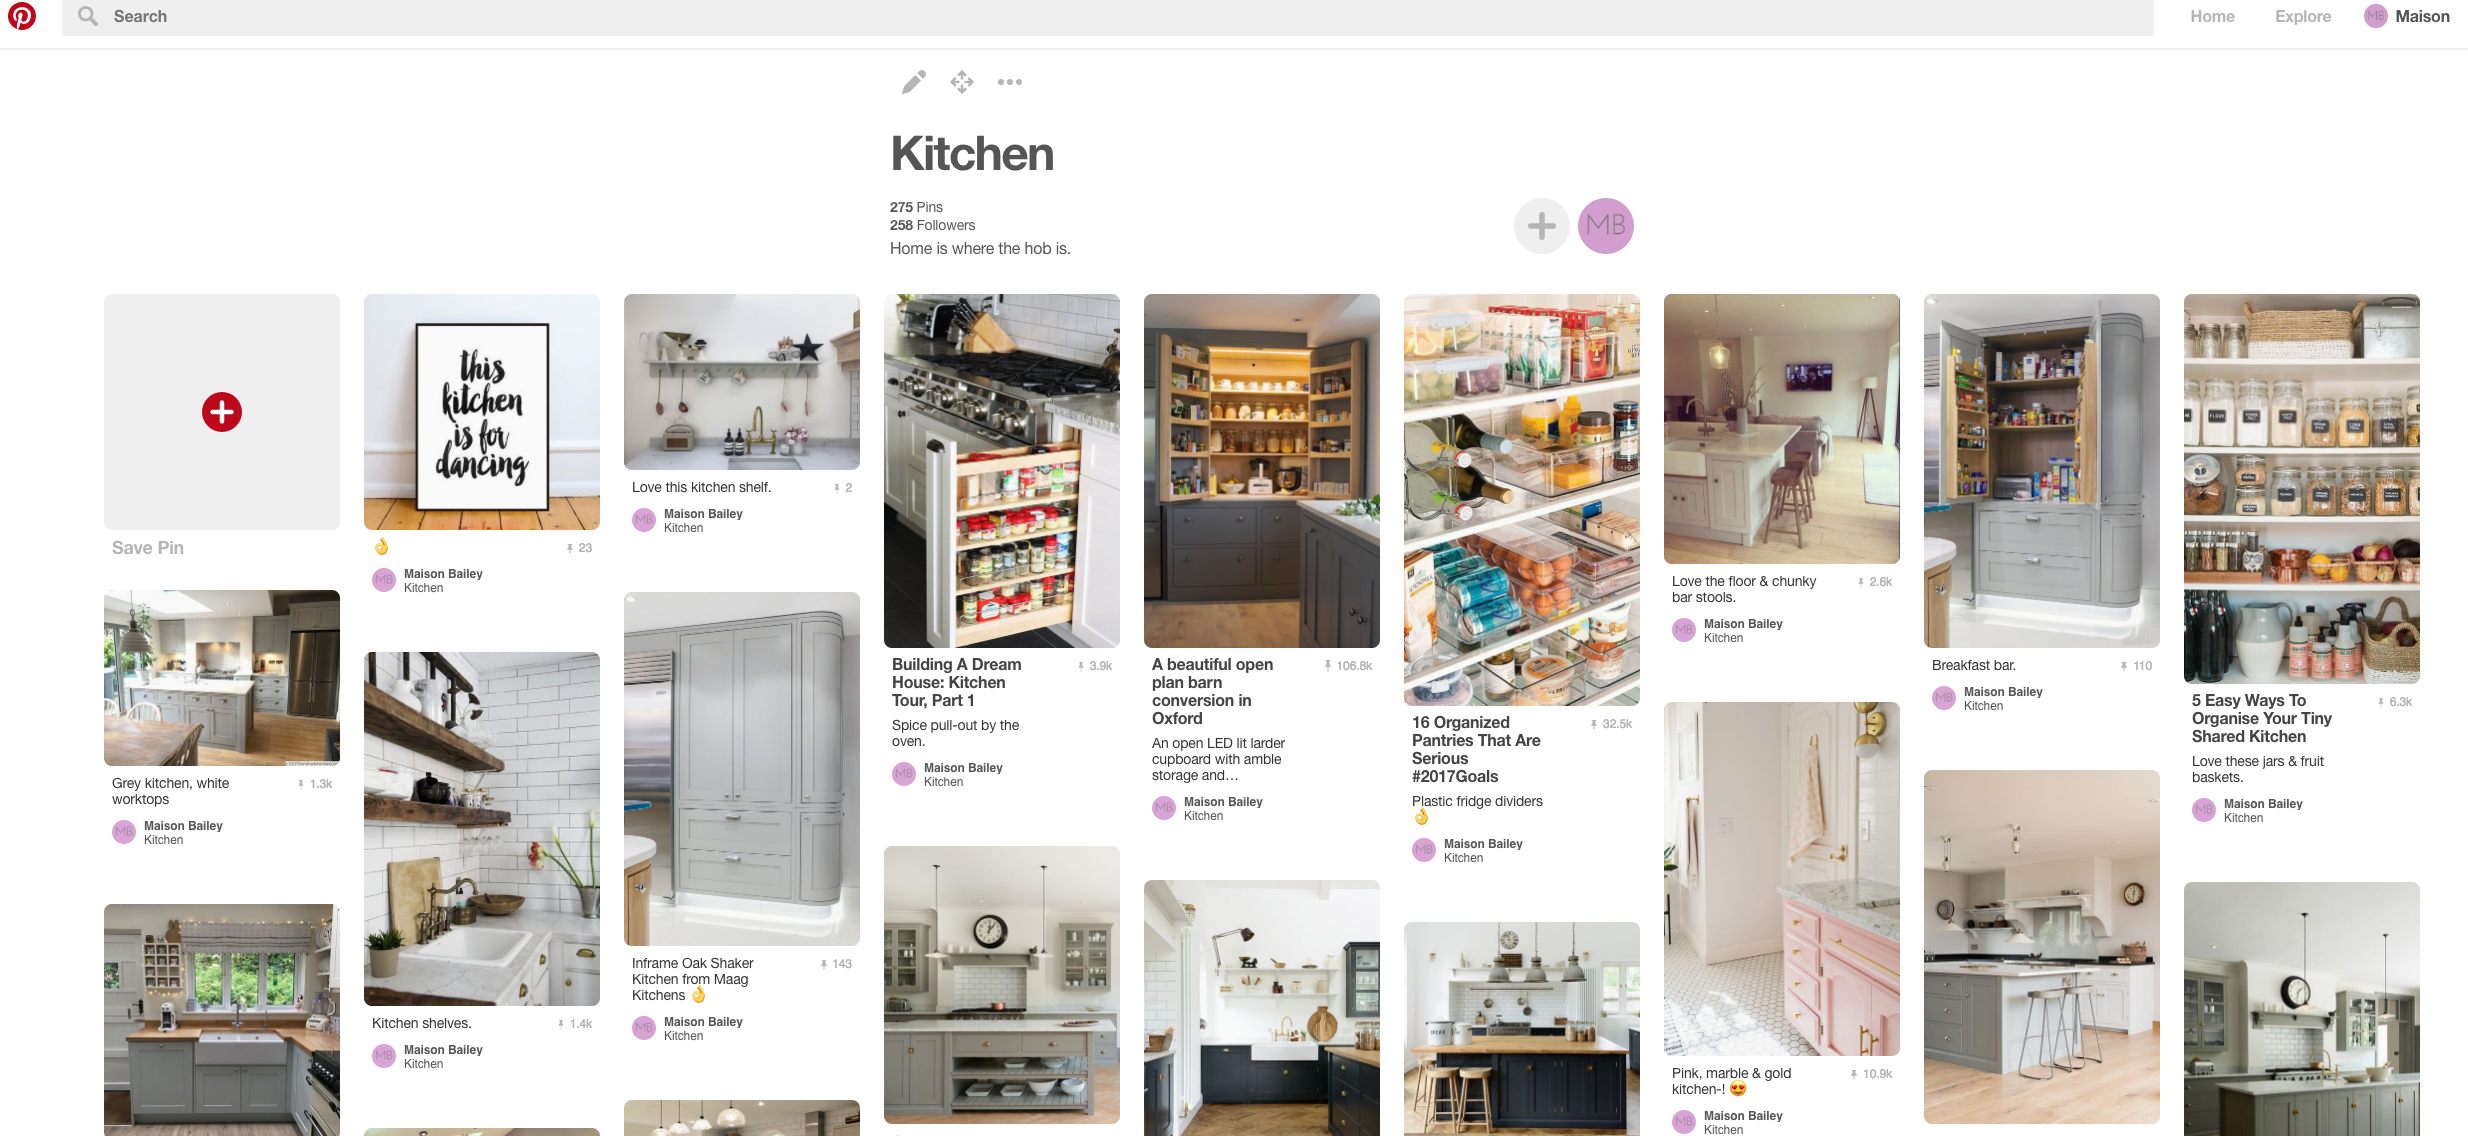 pinterest-kitchen.png